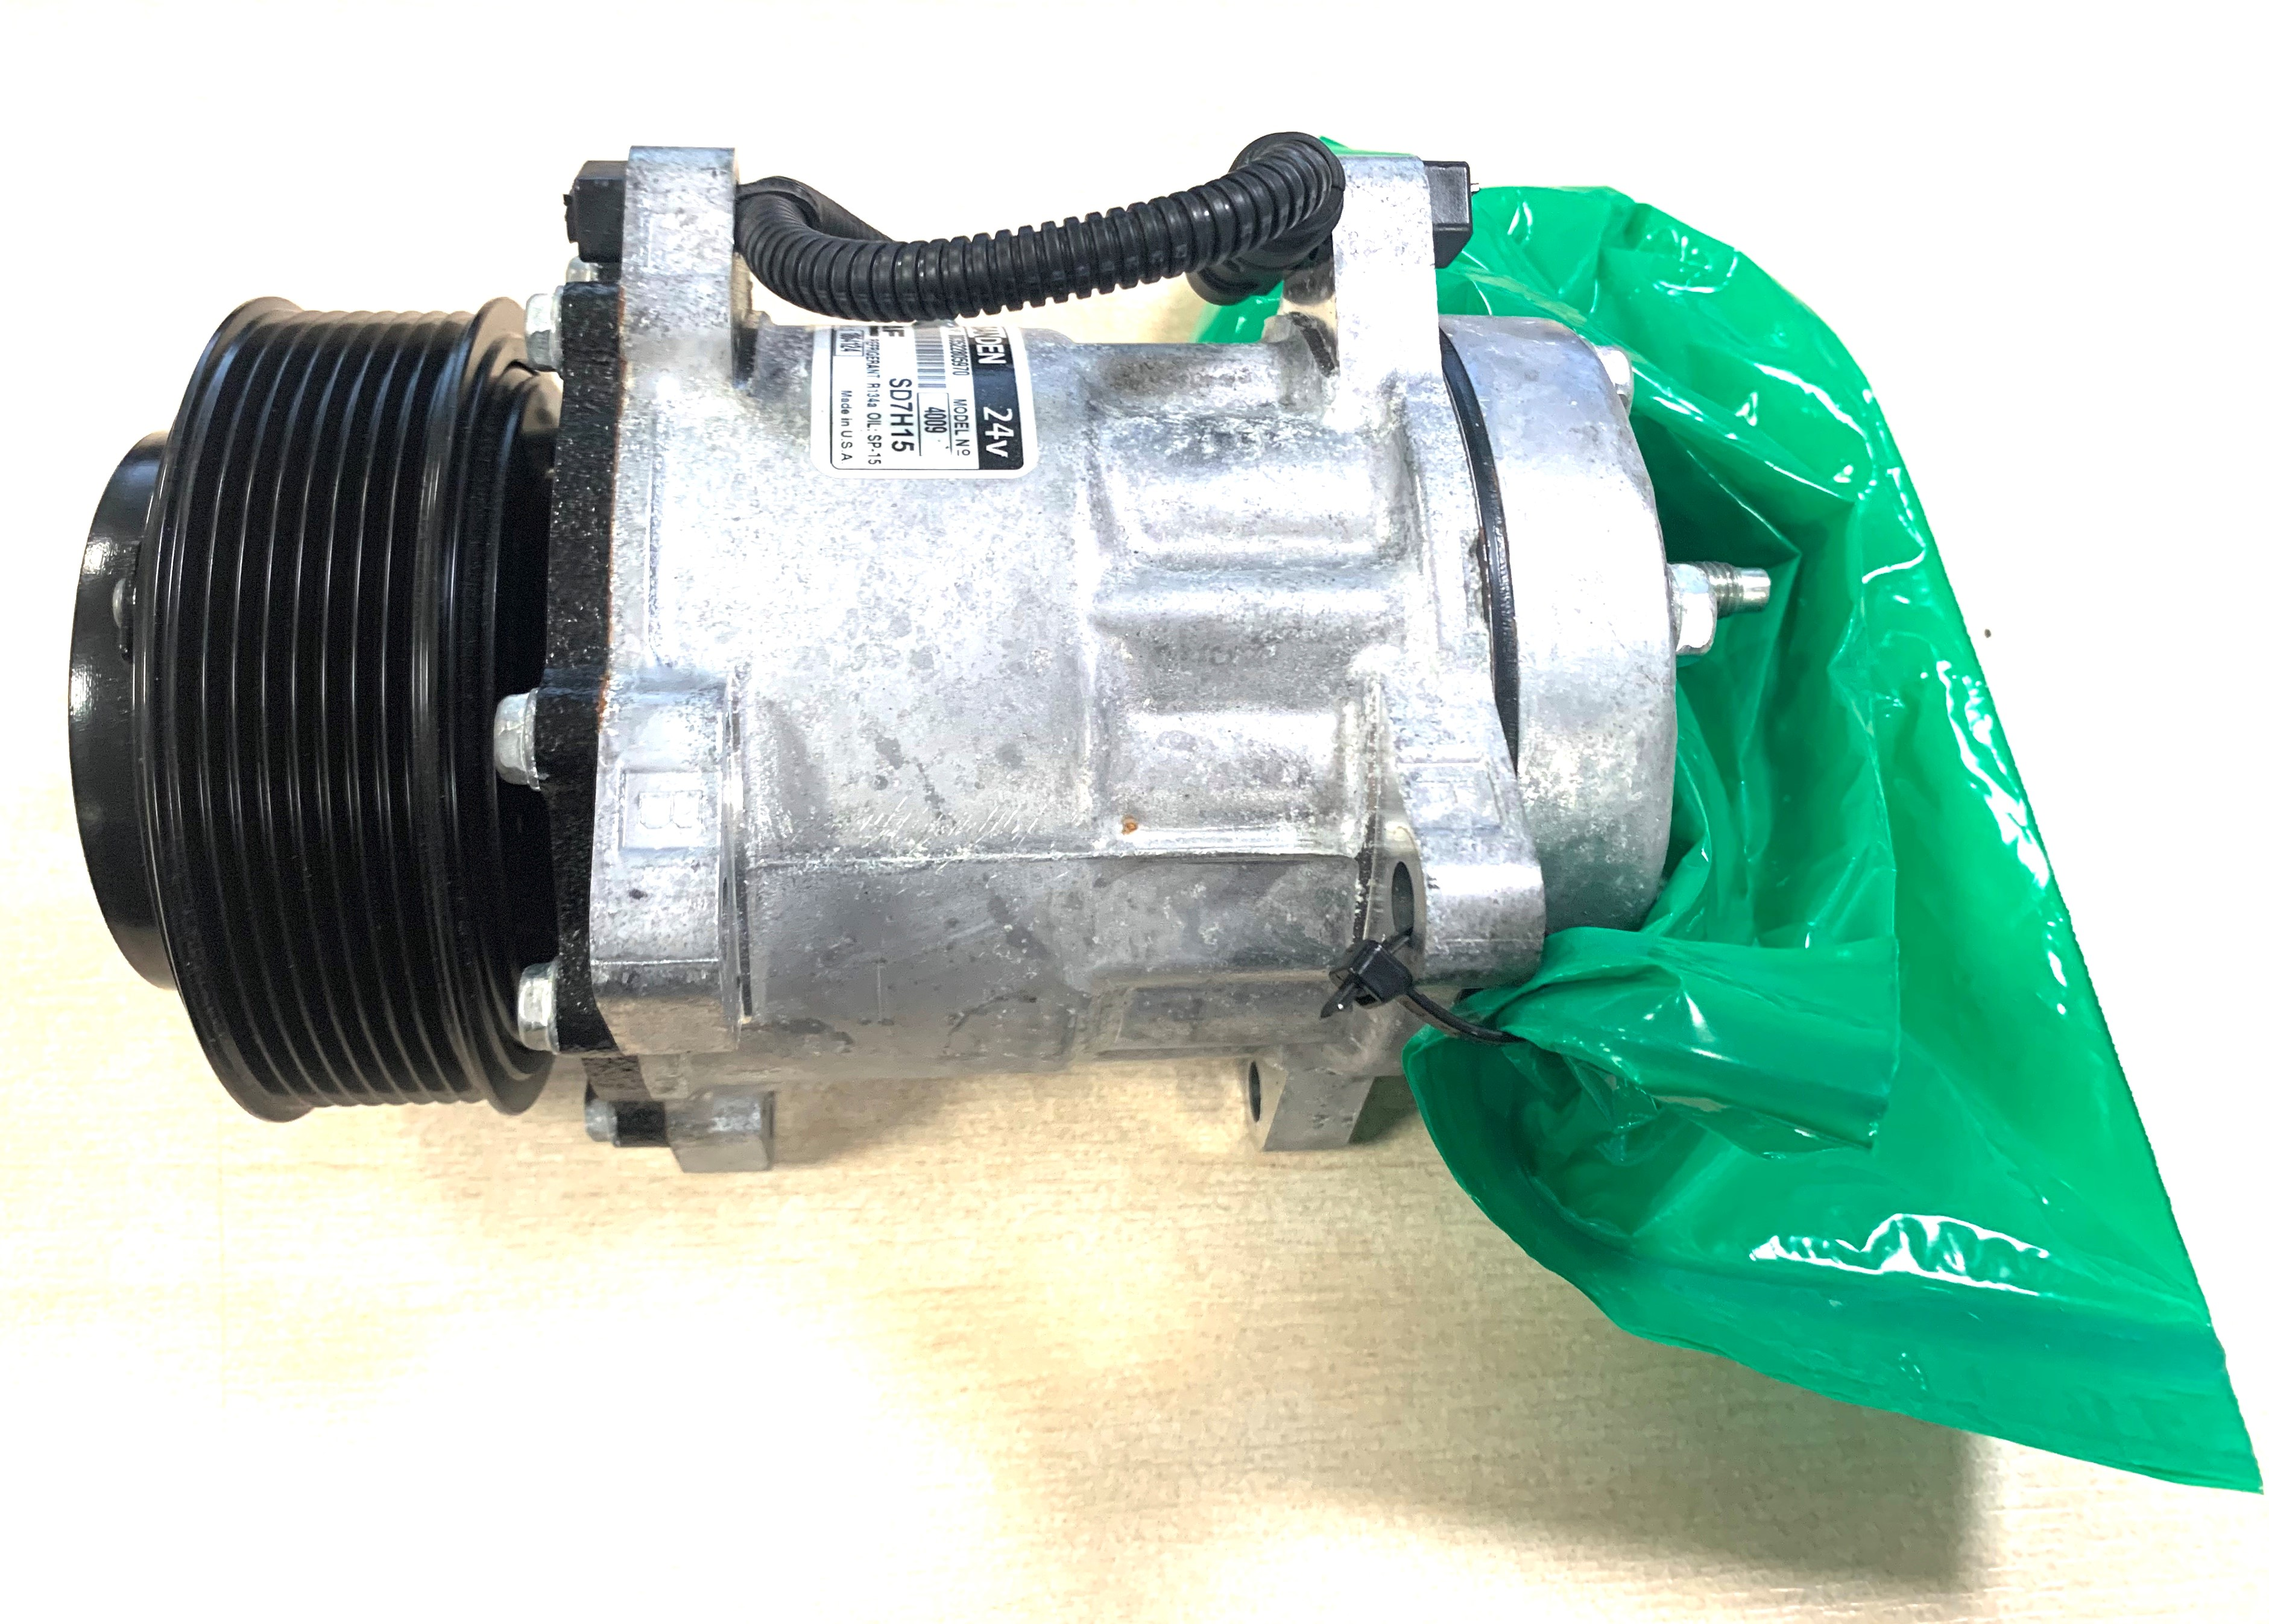 TP4U - RECYCLED NEW DAF AIR CONDITIONING COMPRESSOR FOR LF EURO 6 PX5